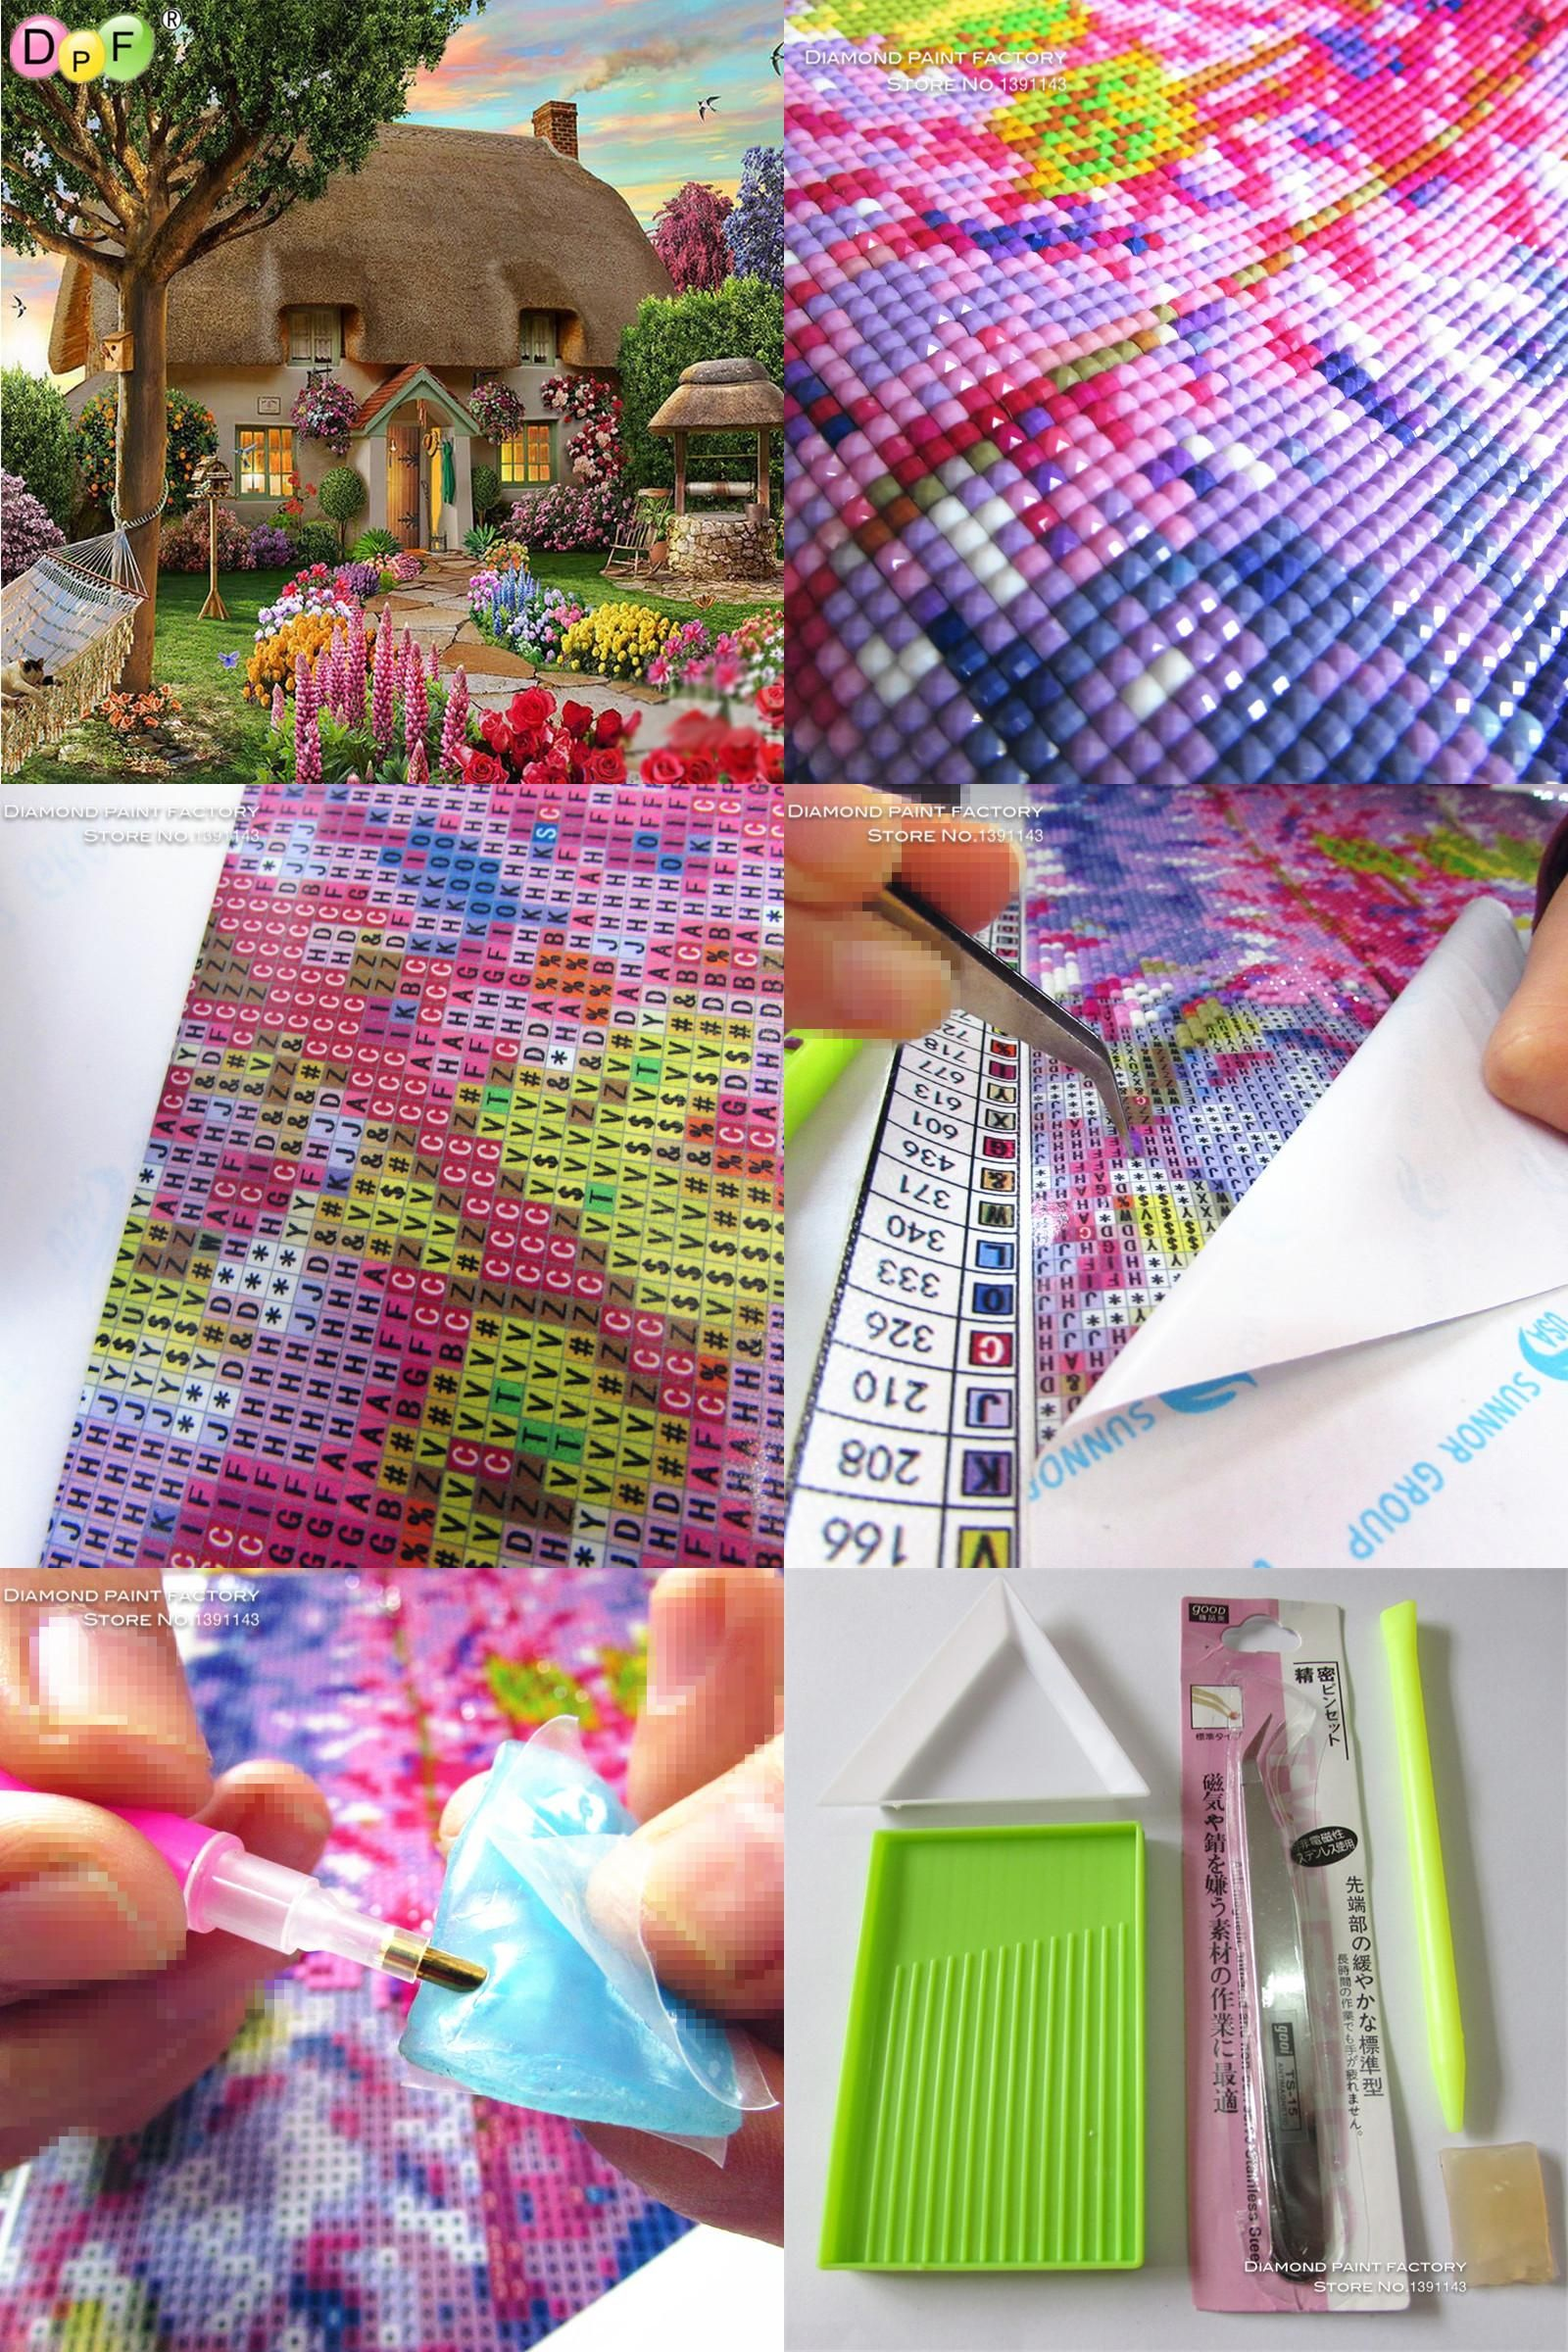 c9c70915b9 [Visit to Buy] Diamond painting cross stitch chimney house 3d Diy Diamond  Embroidery Gift Pasted kits Square mosaic Drill home decor crafts  #Advertisement